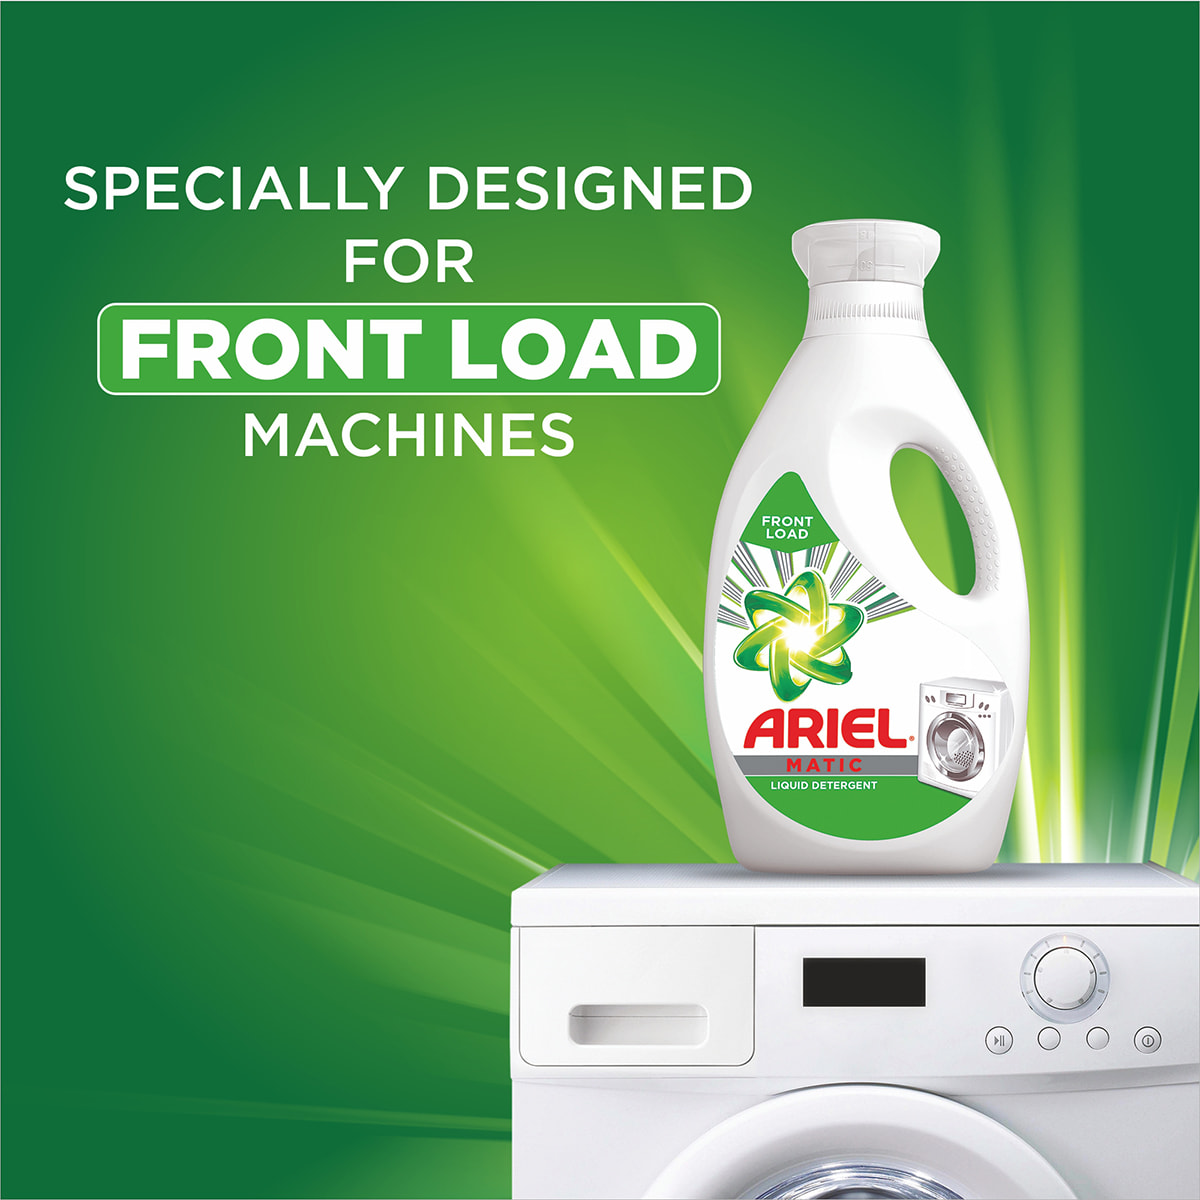 Specially designed for front load washing machines